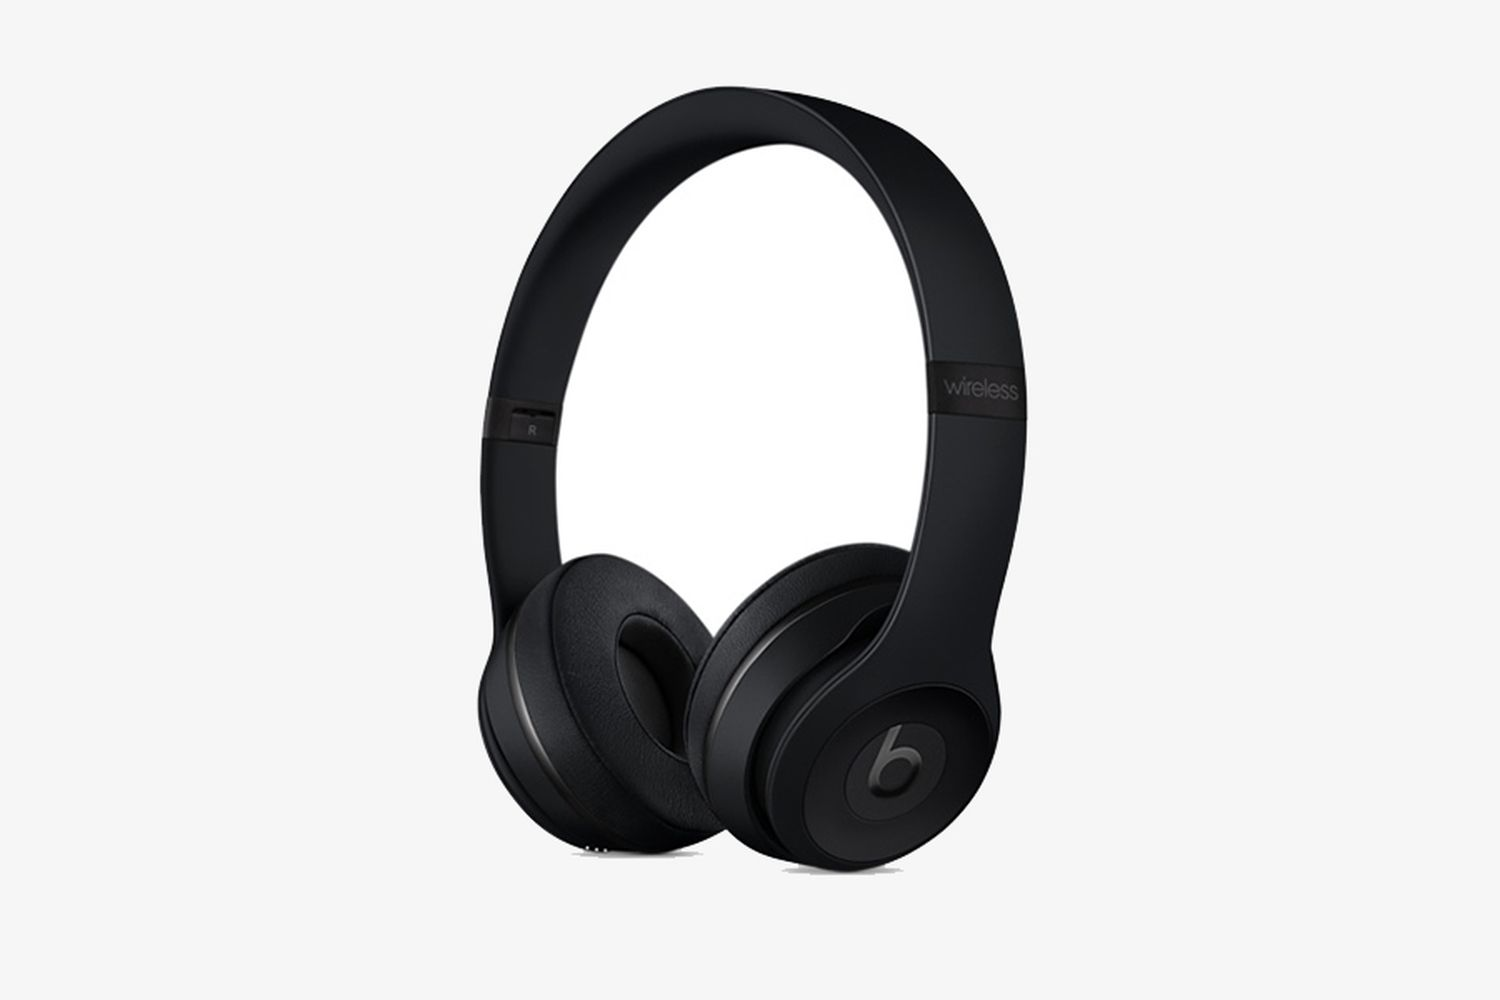 Beats Solo Wireless Headphones